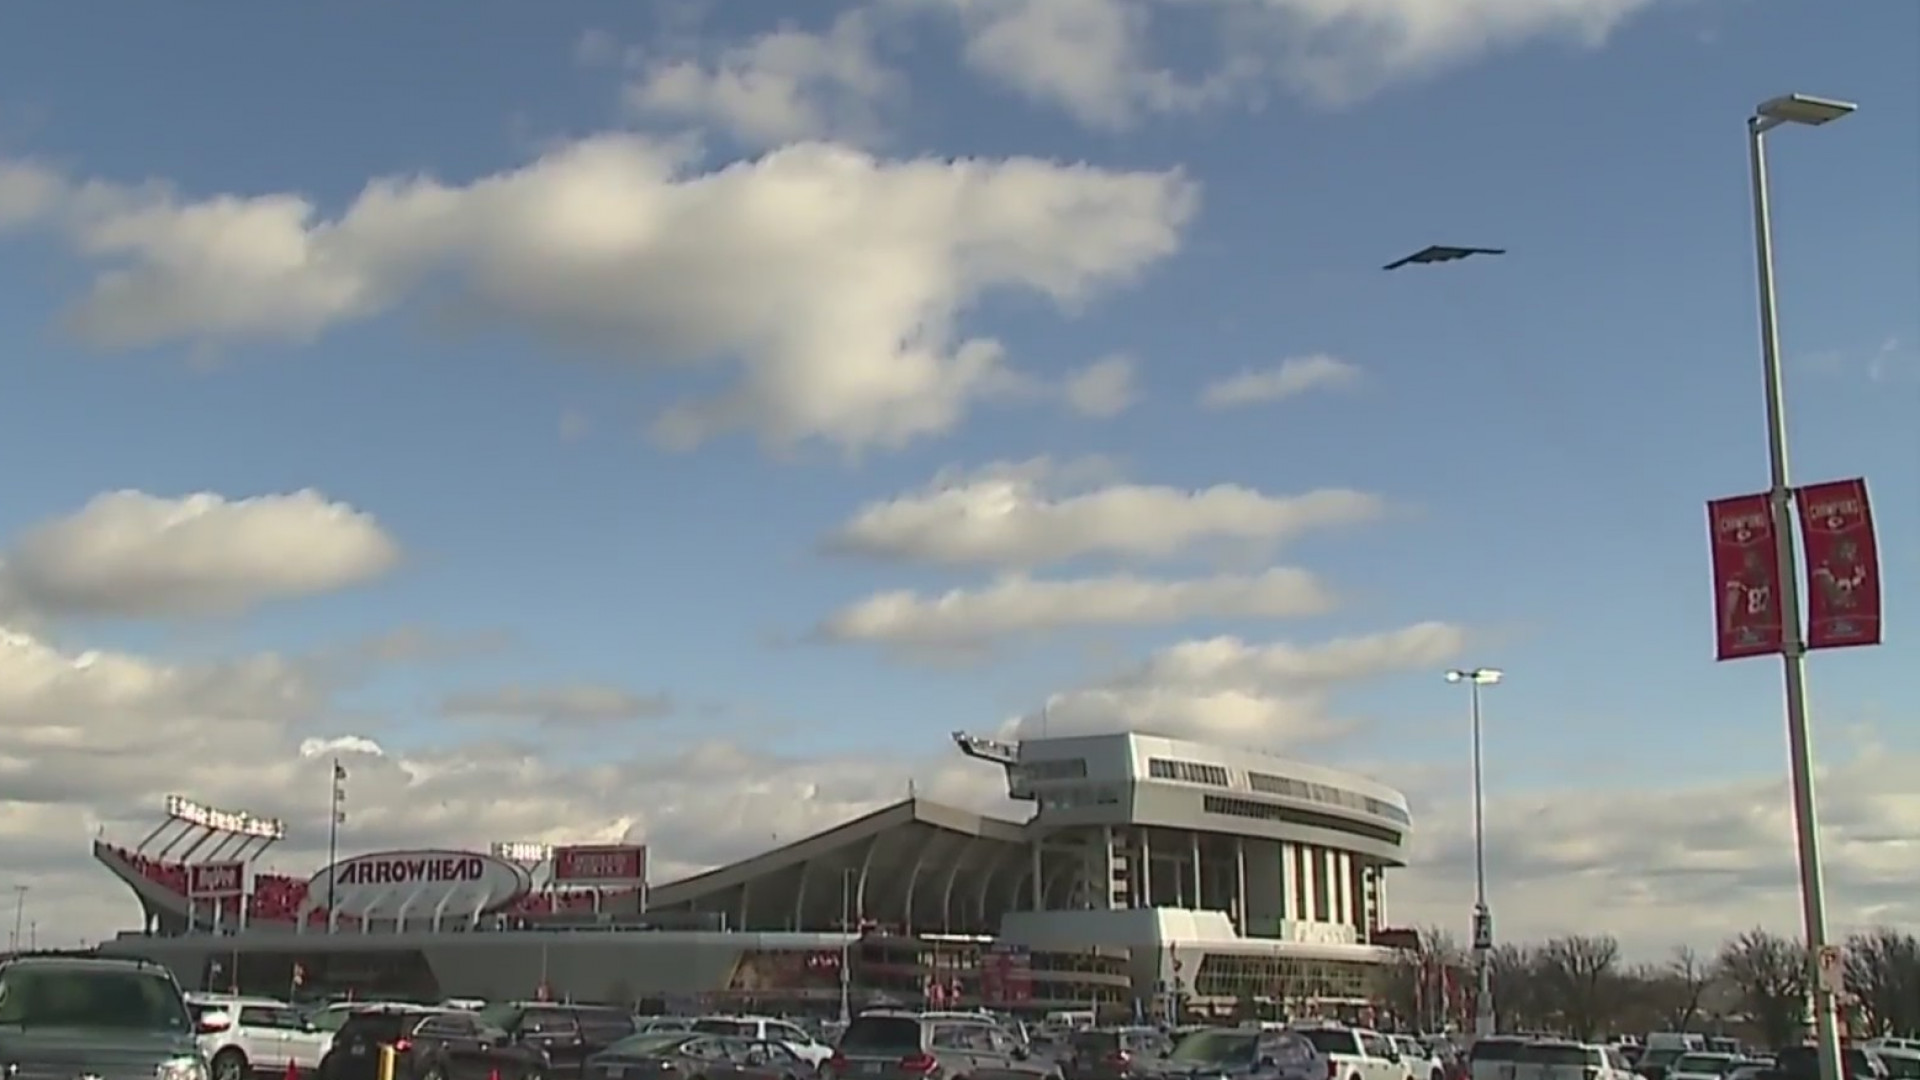 Picture of B-2 over Arrowhead